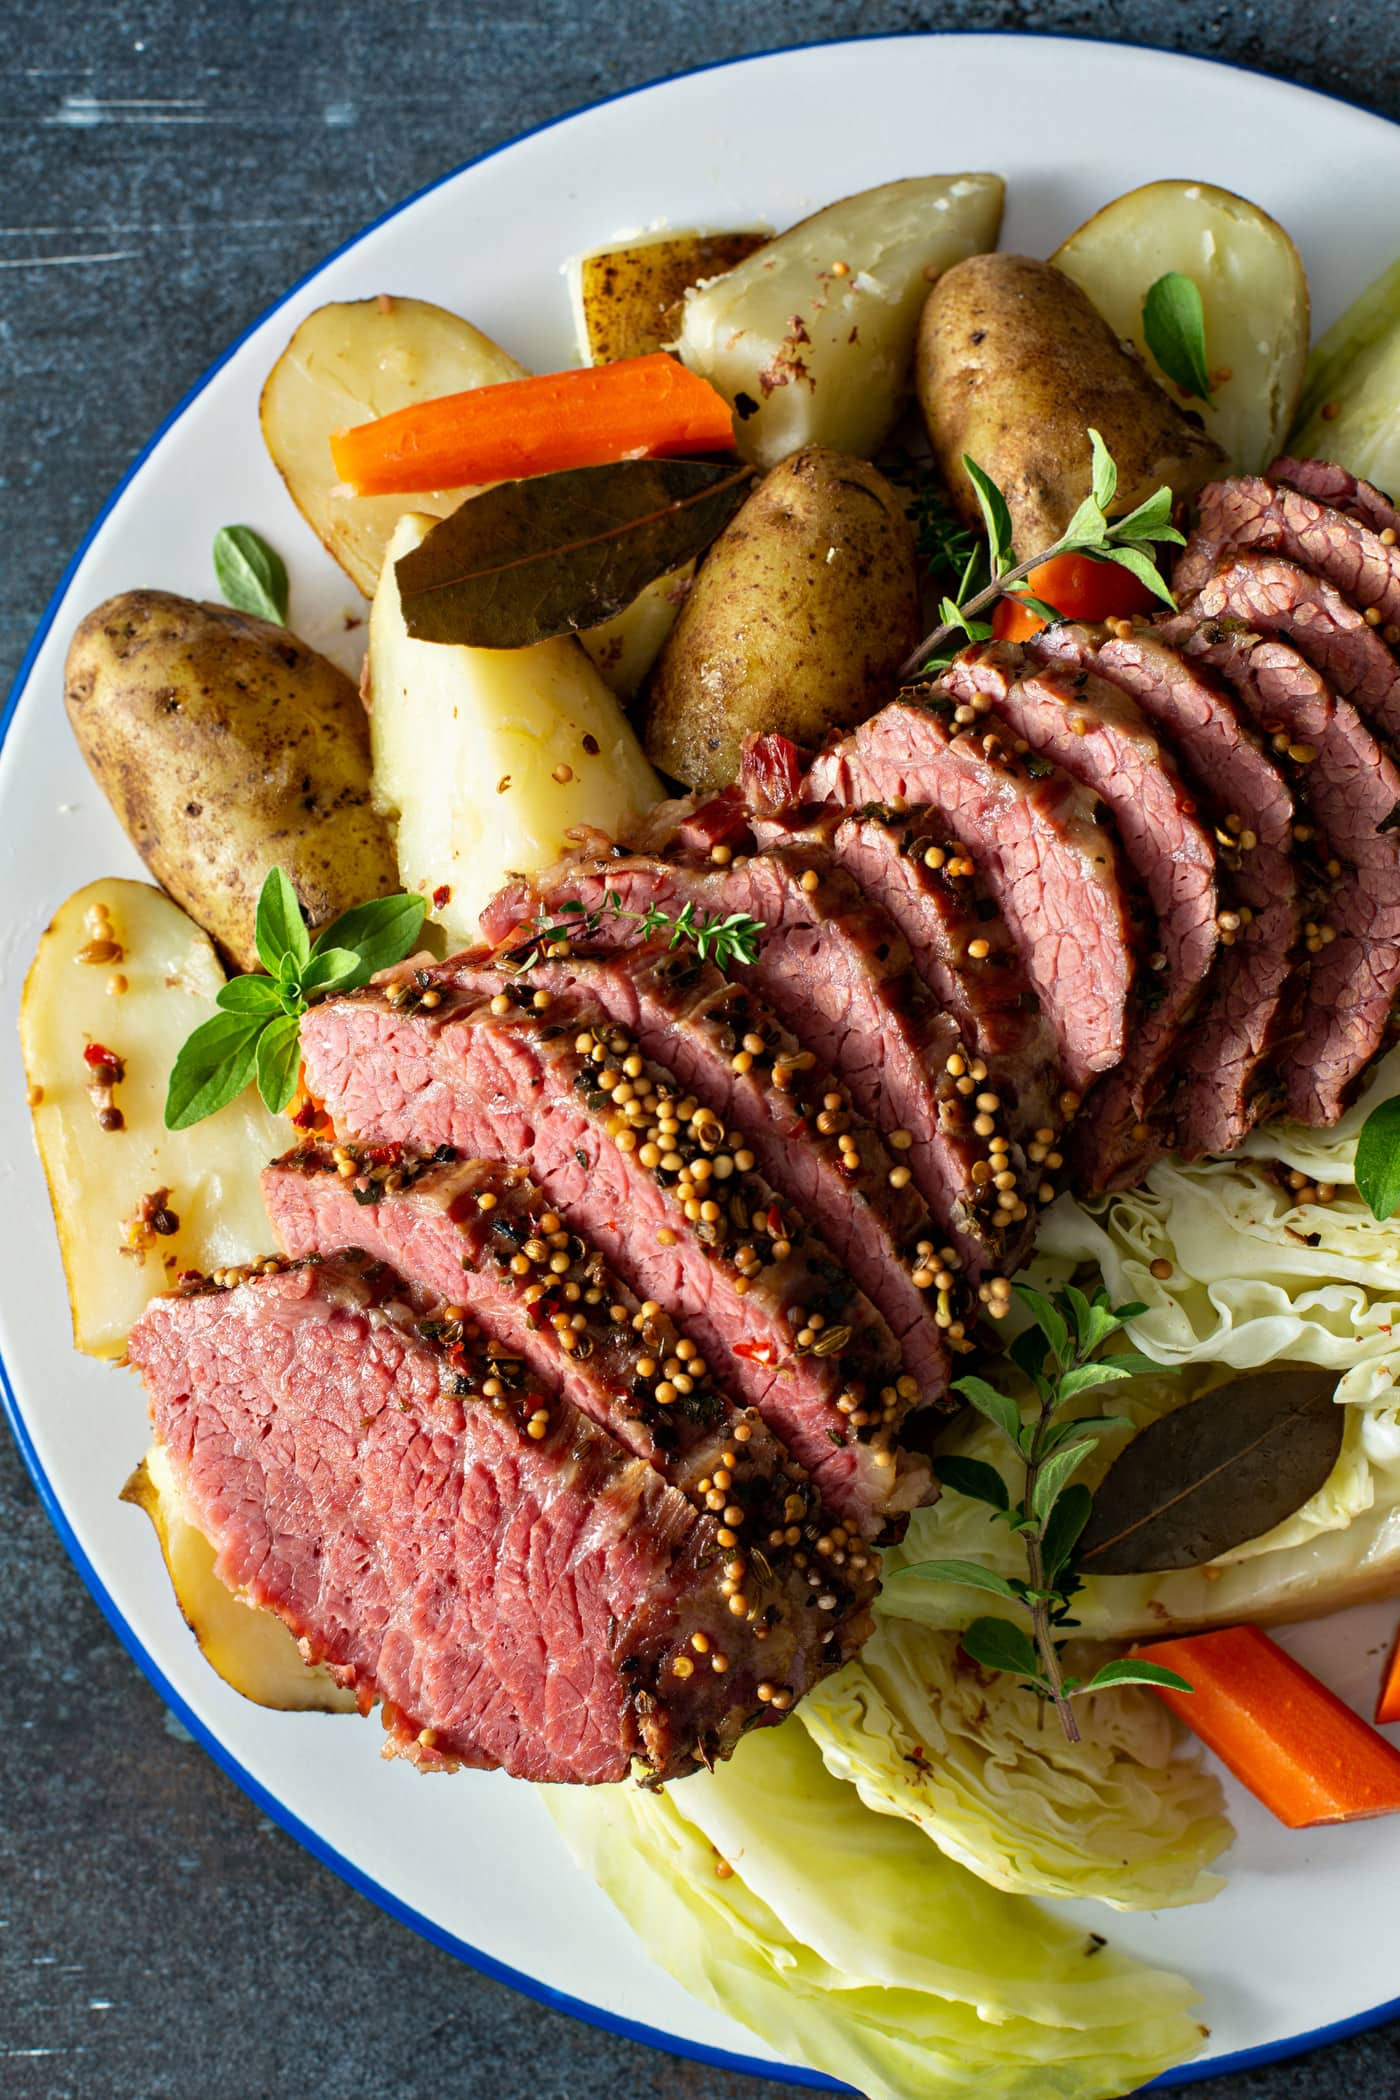 A platter of corned beef and cabbage. There are 12 slices of corned beef with potatoes and carrots on one side and cabbage and carrots on the other side.